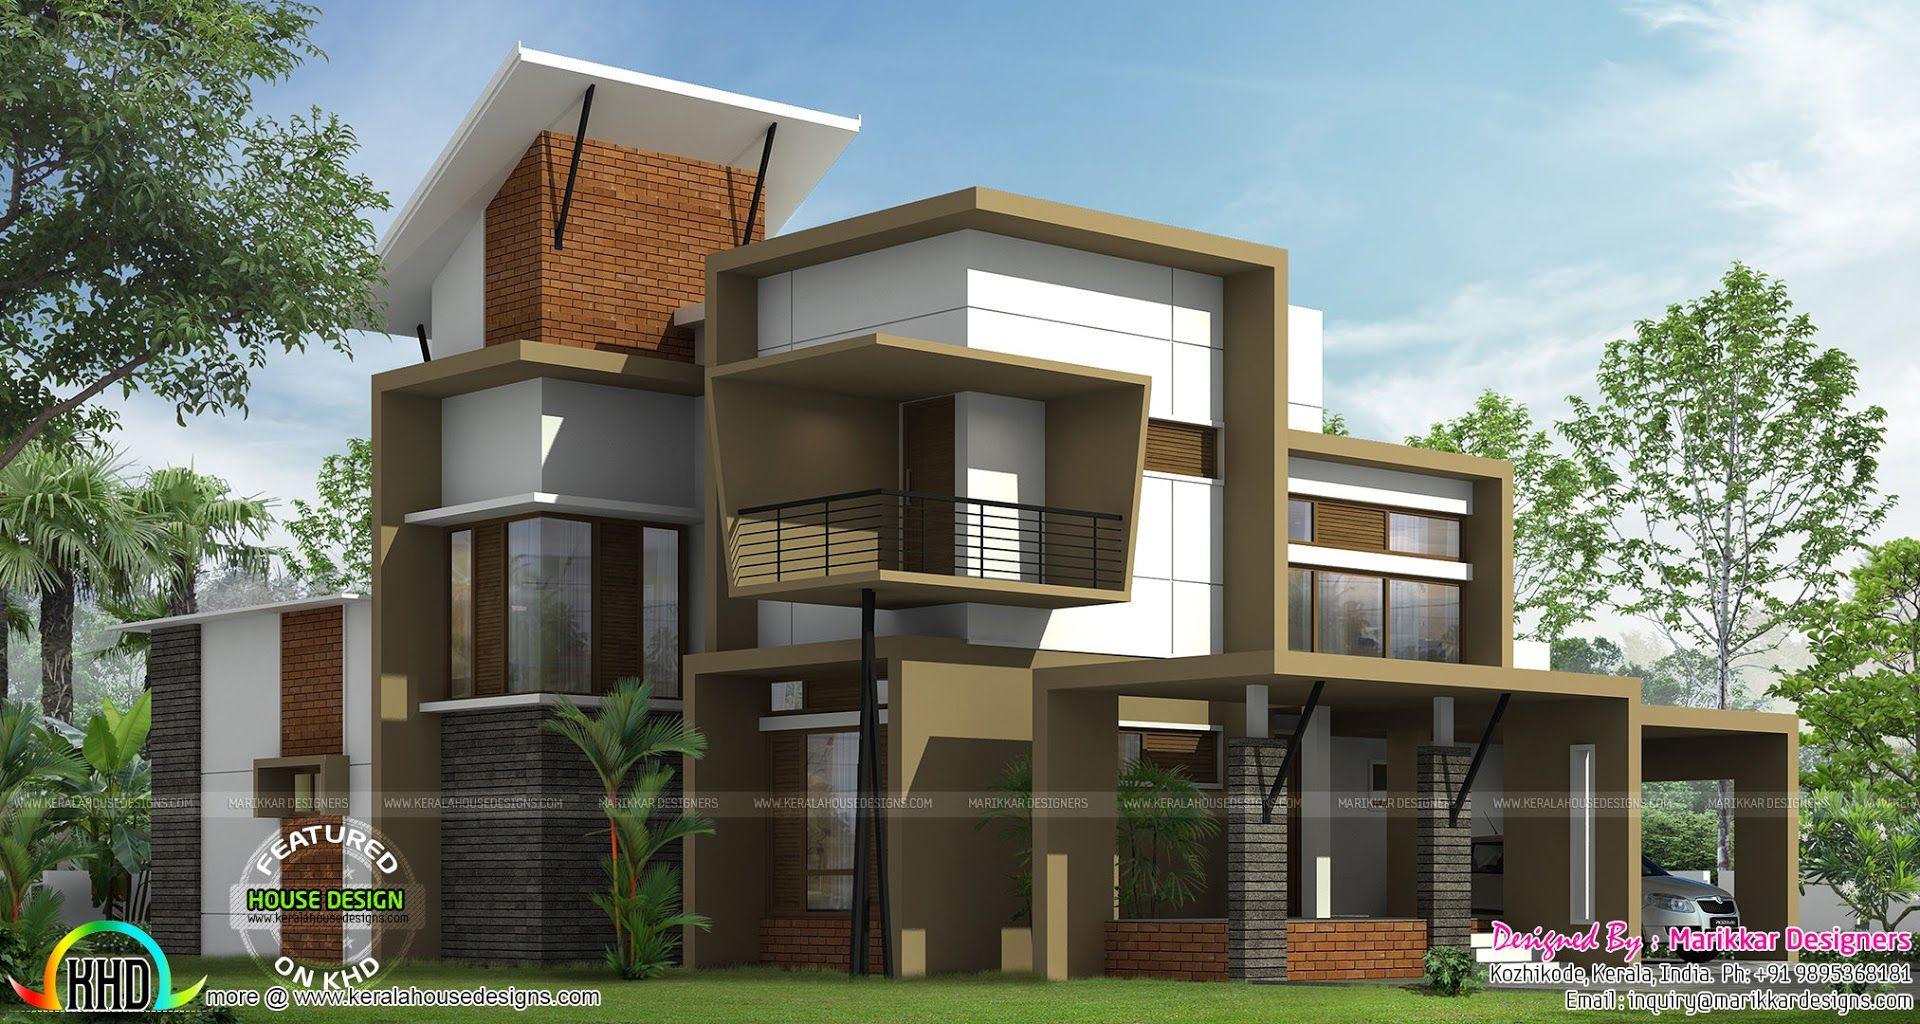 Stylish Modern House Plans For Your Modern Living Modern House Plans Kerala House Design Model House Plan